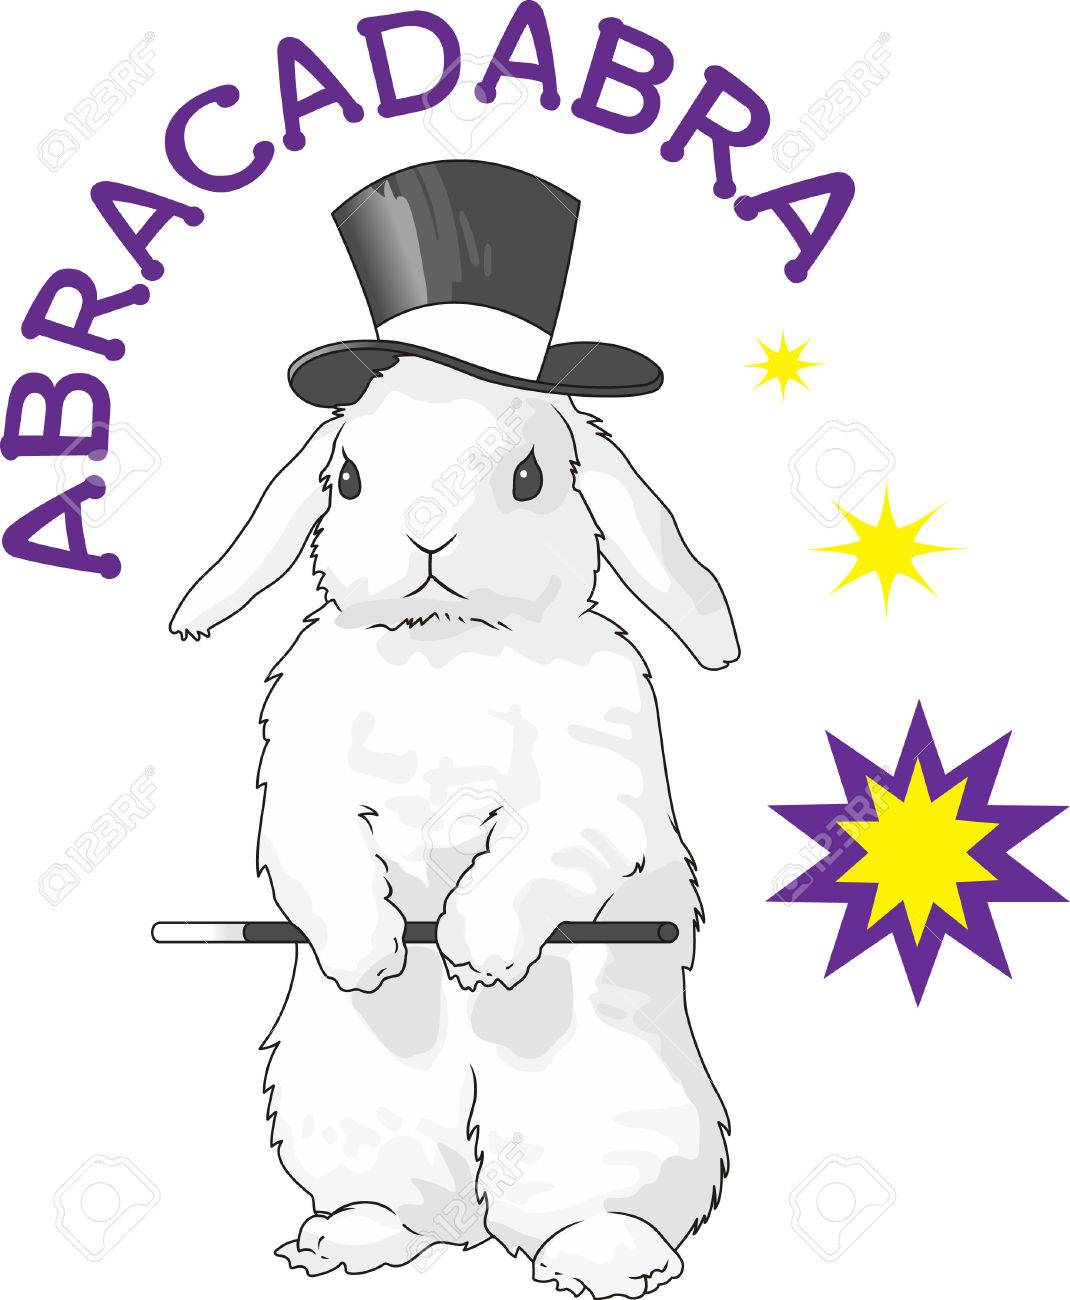 This Cute Rabbit Is The Perfect Design To Promote Your Magic Show Stock Vector